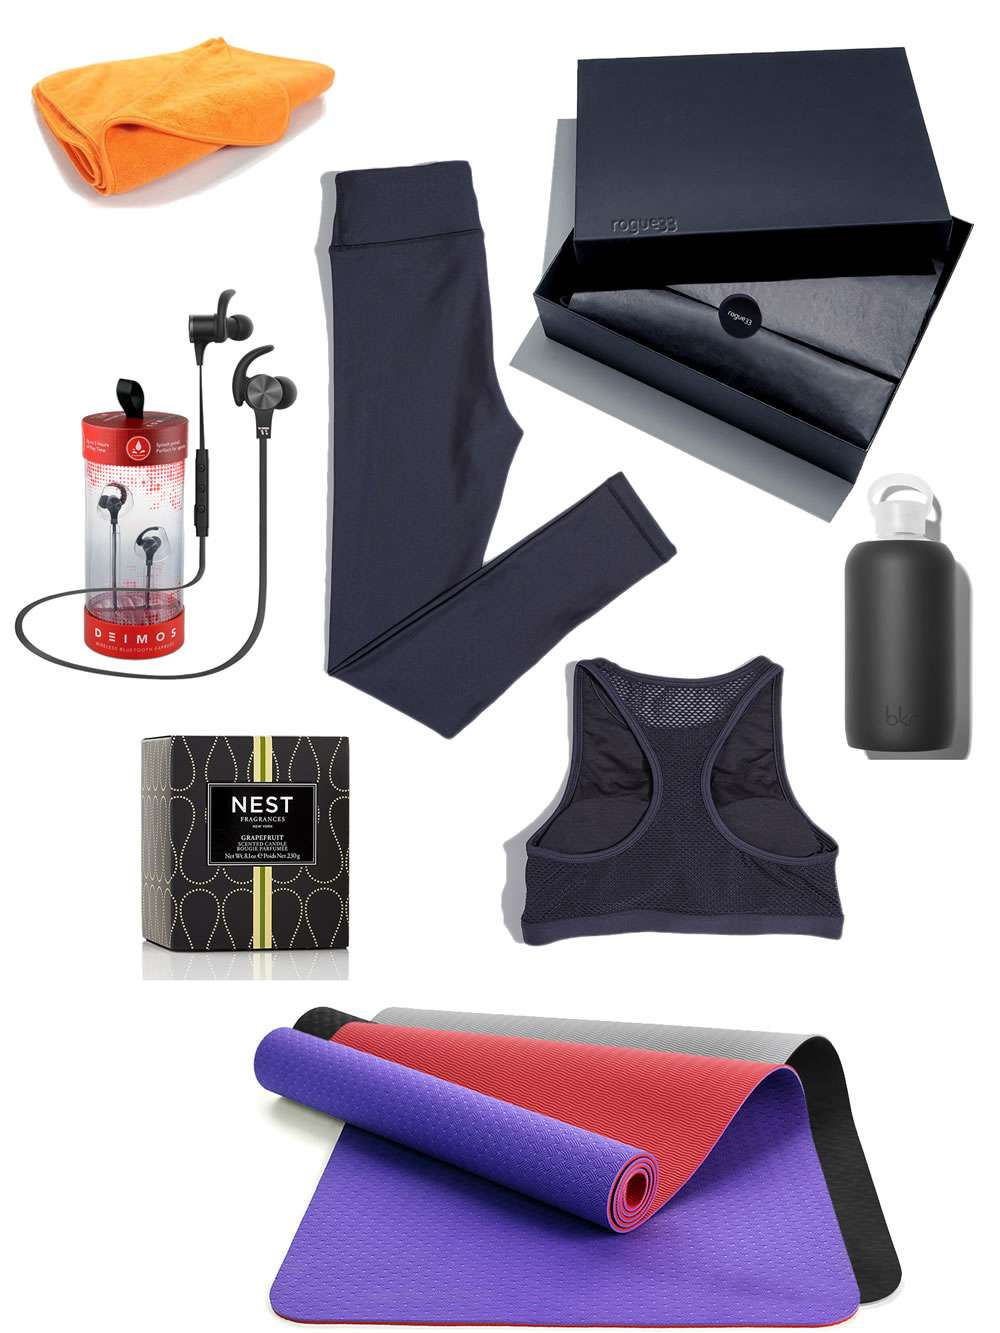 Redeem Your Core Starter Kit* - *Get Your FREE Core Starter Kit VALUED AT $250 when you purchase at nordictrack.com. You must click through one of our review or site links before ordering at Nordictrack.Men's options available.Nordictack is not affiliated with this offer